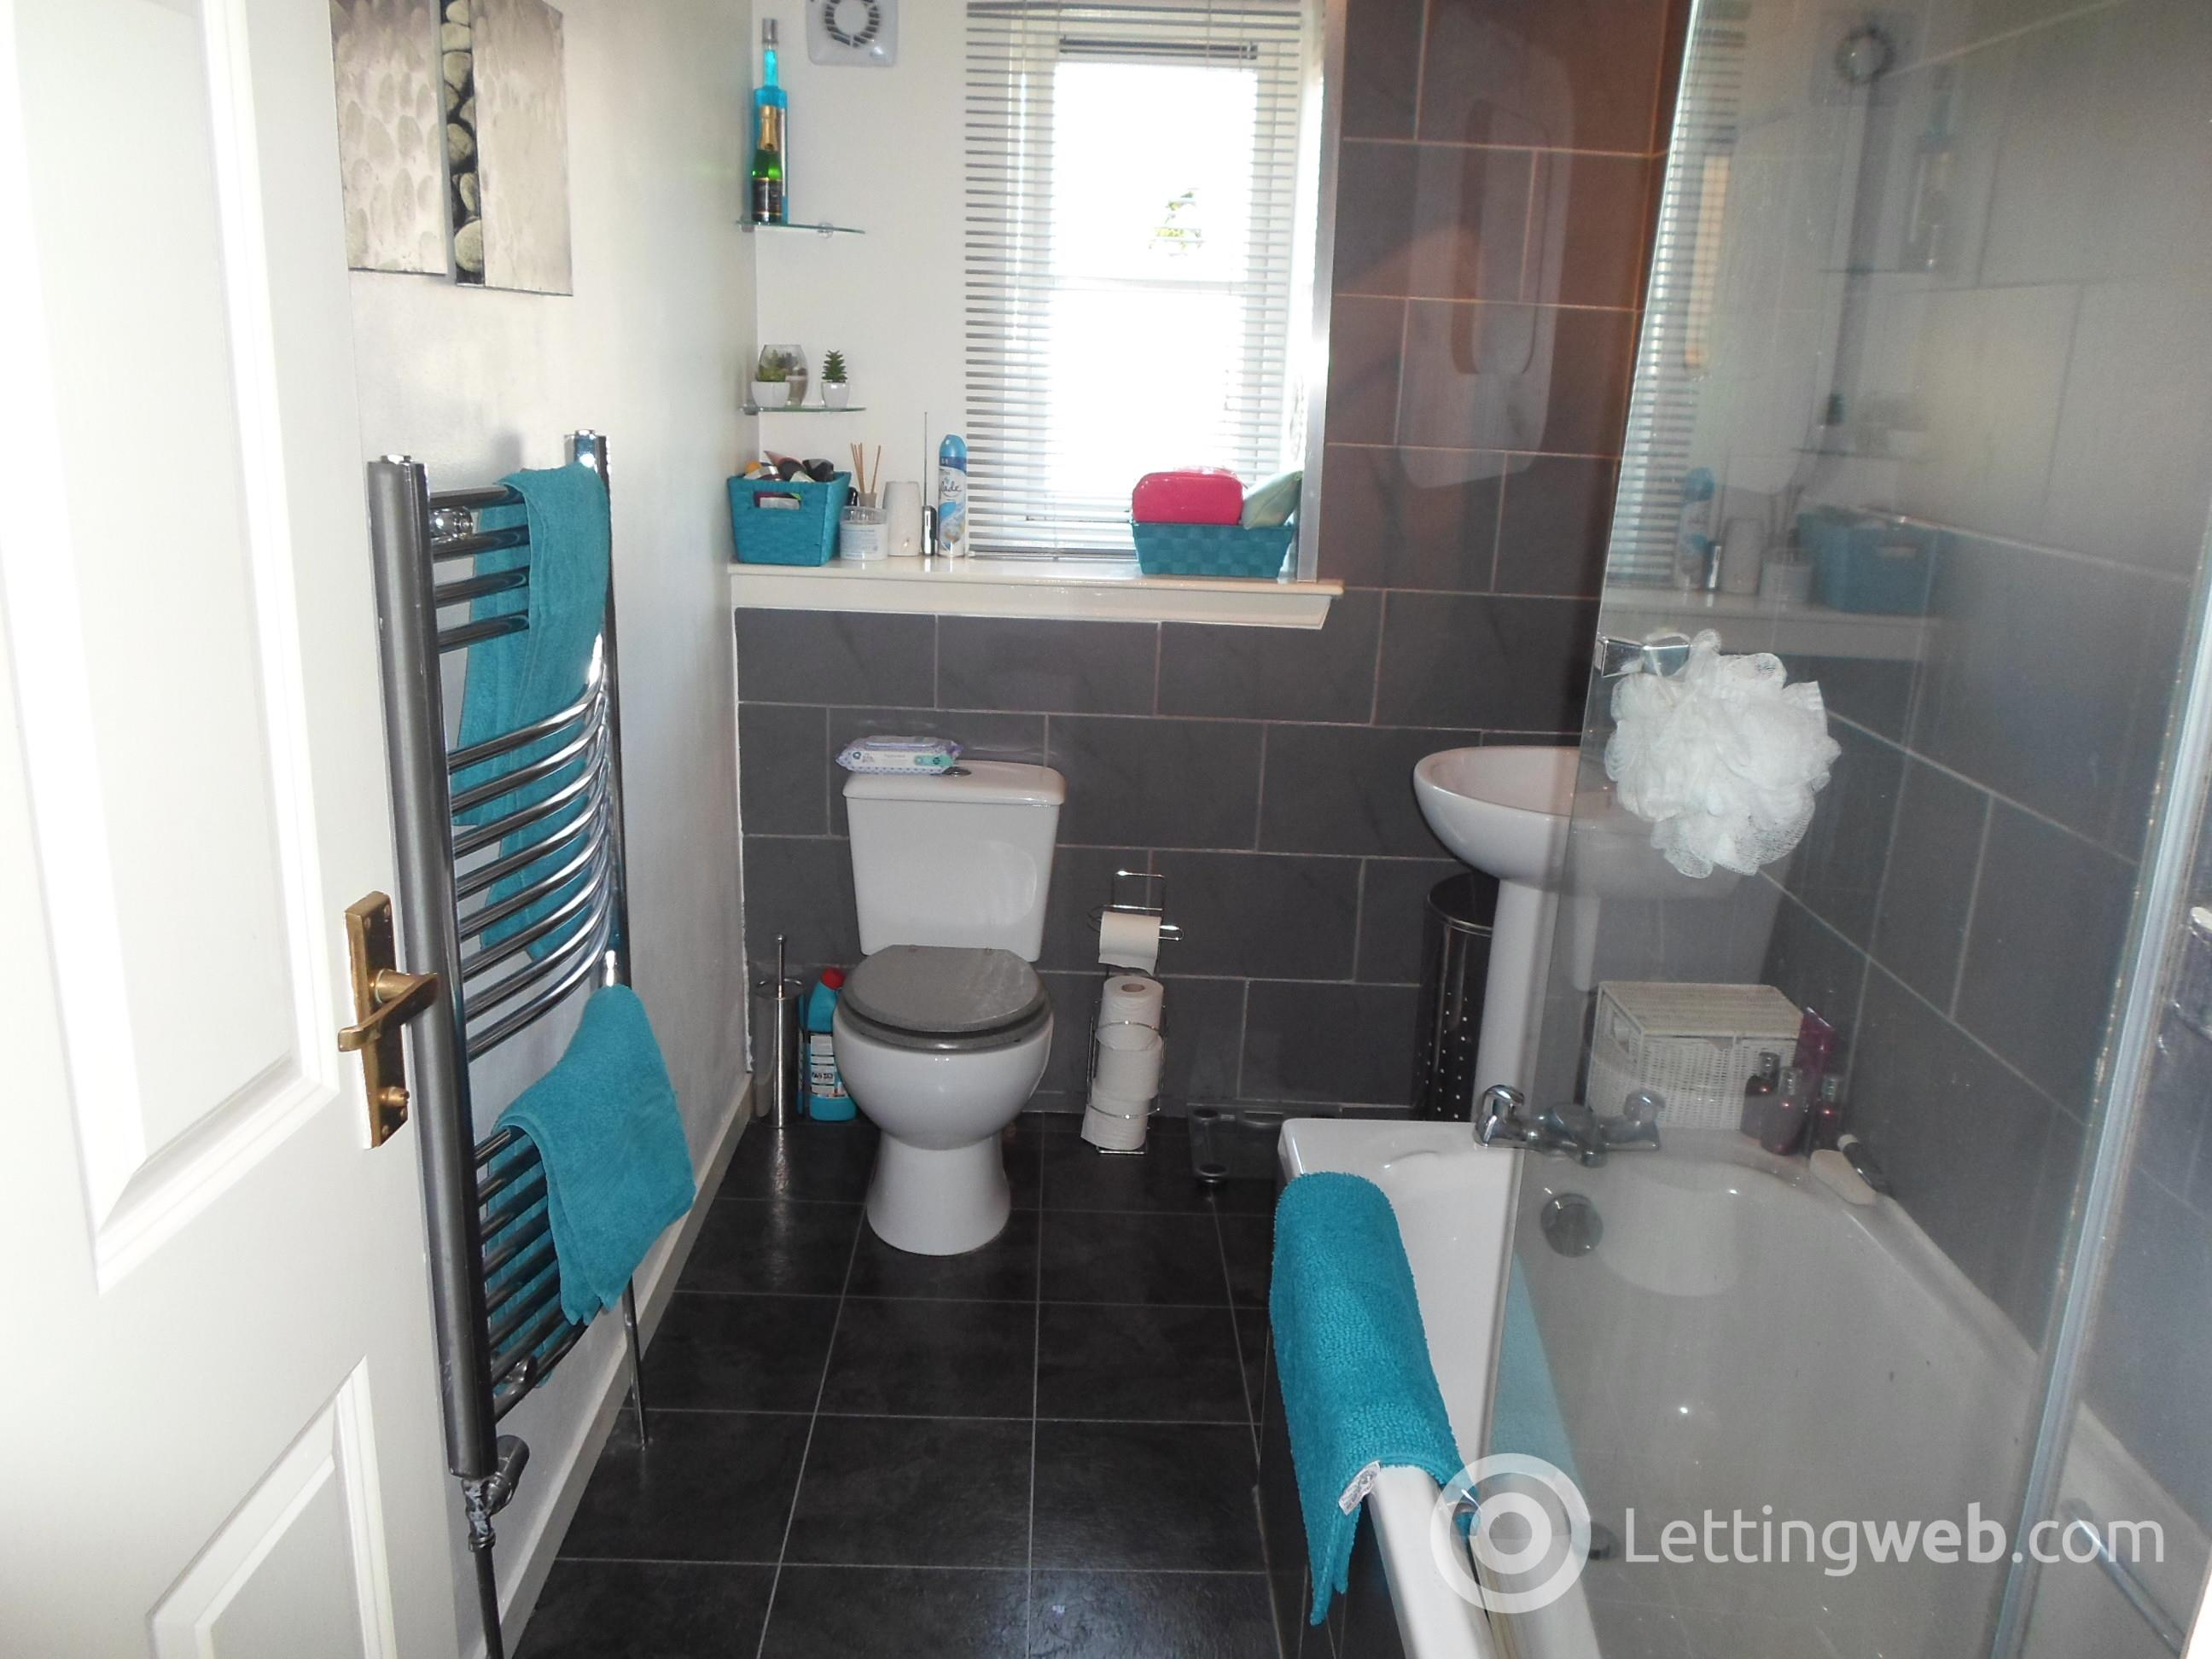 Property to rent in 74 willian Fitsgerald way